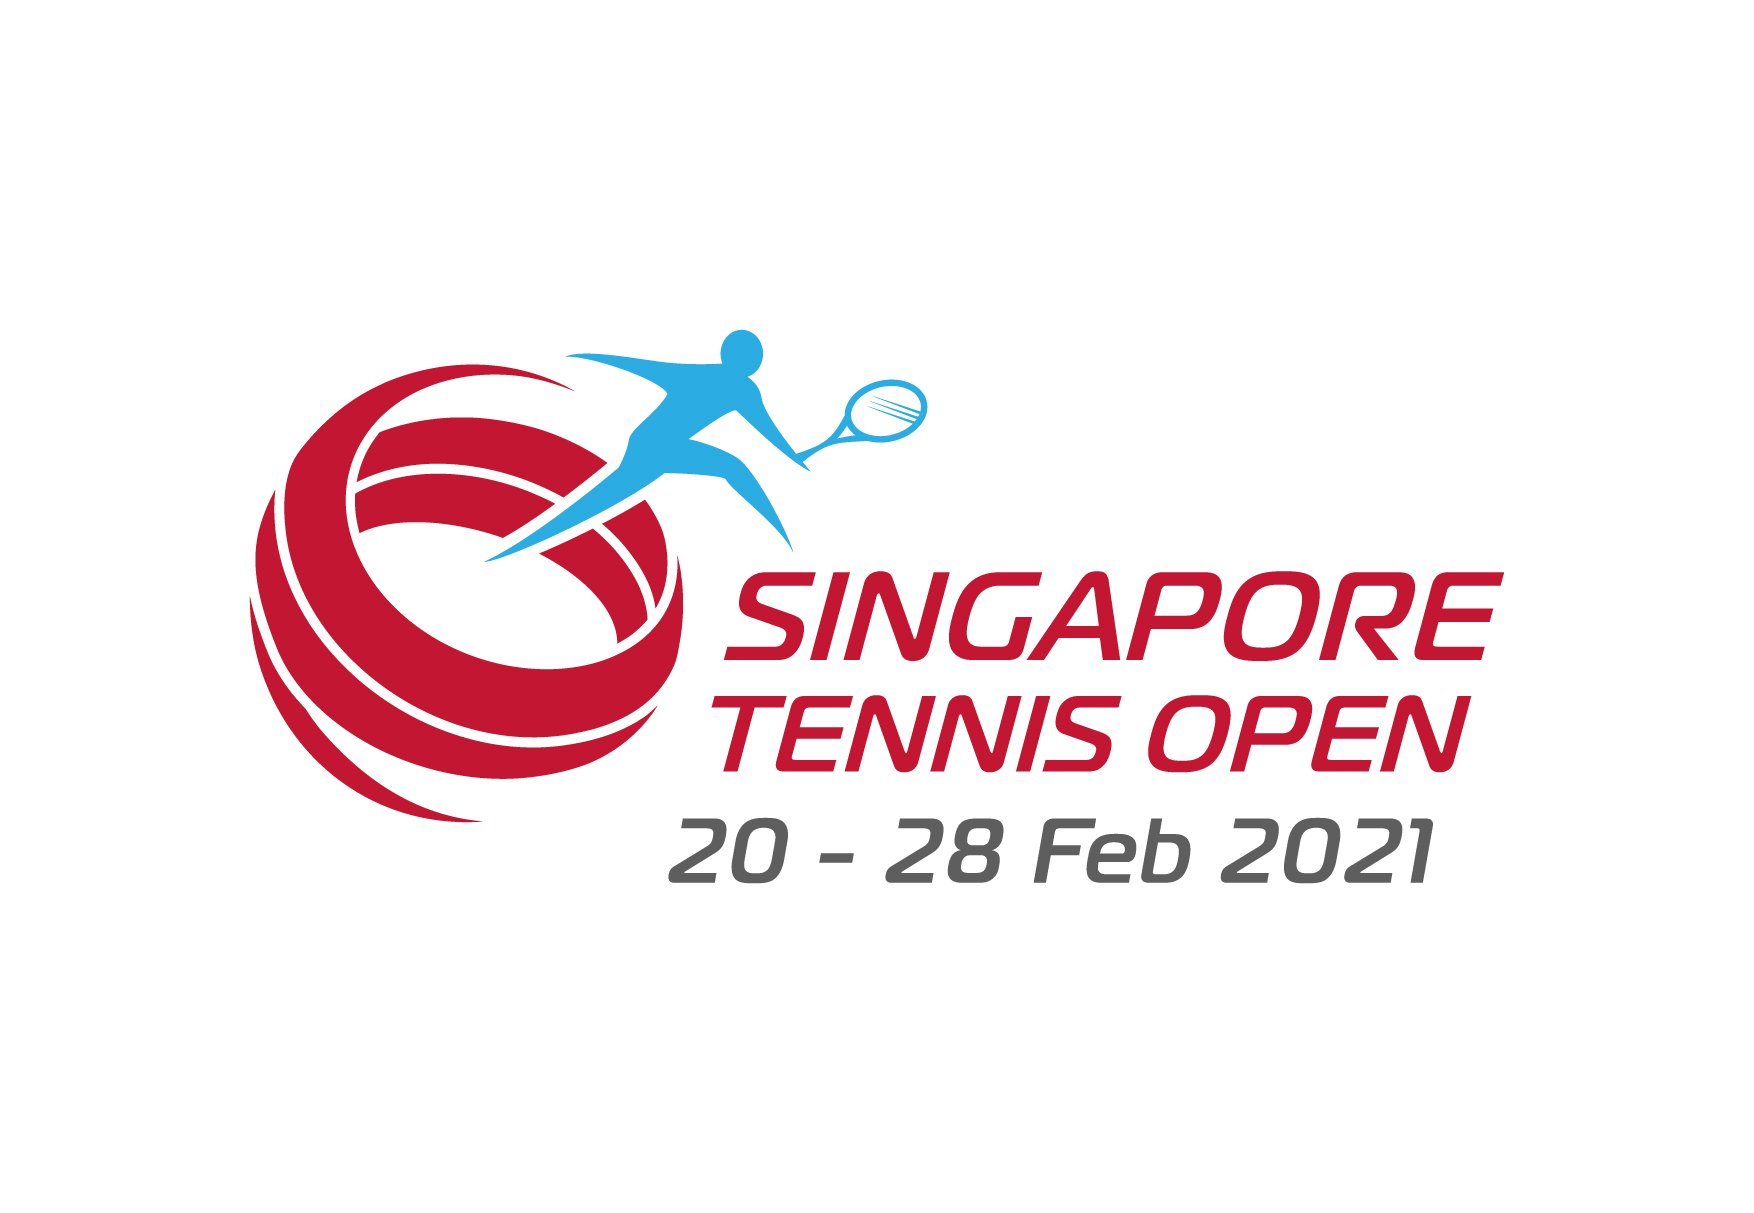 Singapore Tennis Open Semi-finals and Finals Tickets sold out!